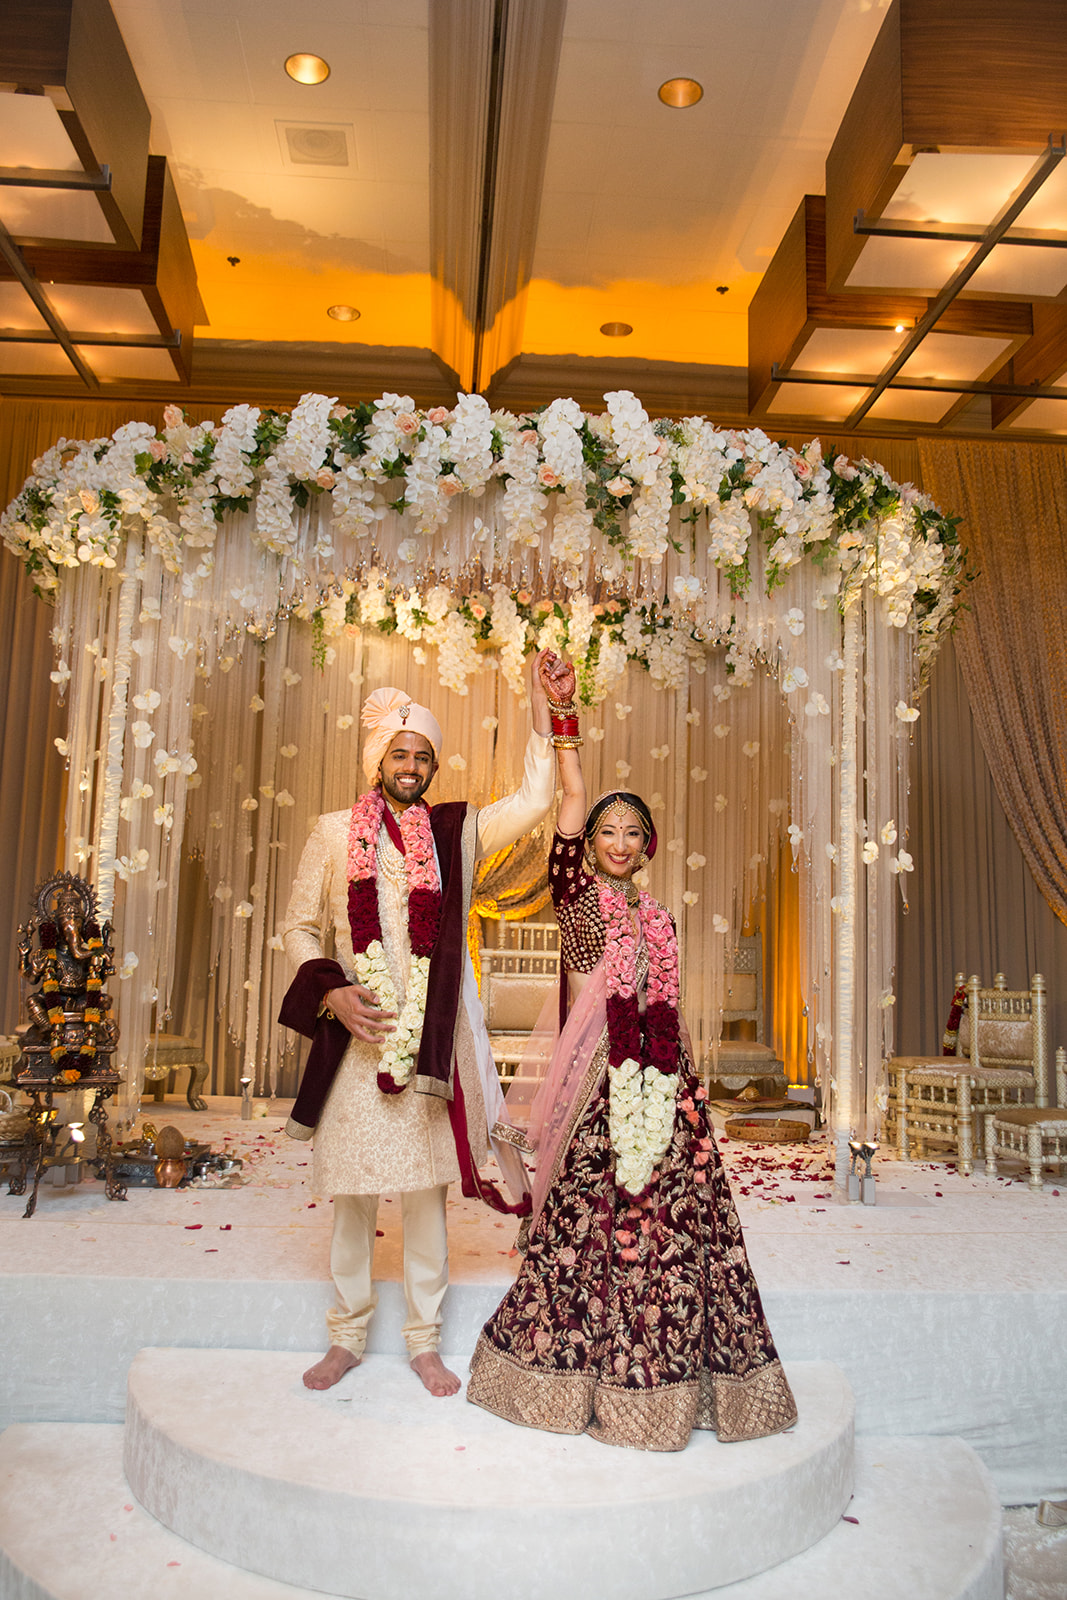 Le Cape Weddings - South Asian Wedding - Puja and Kheelan - Family Formals A29.jpg